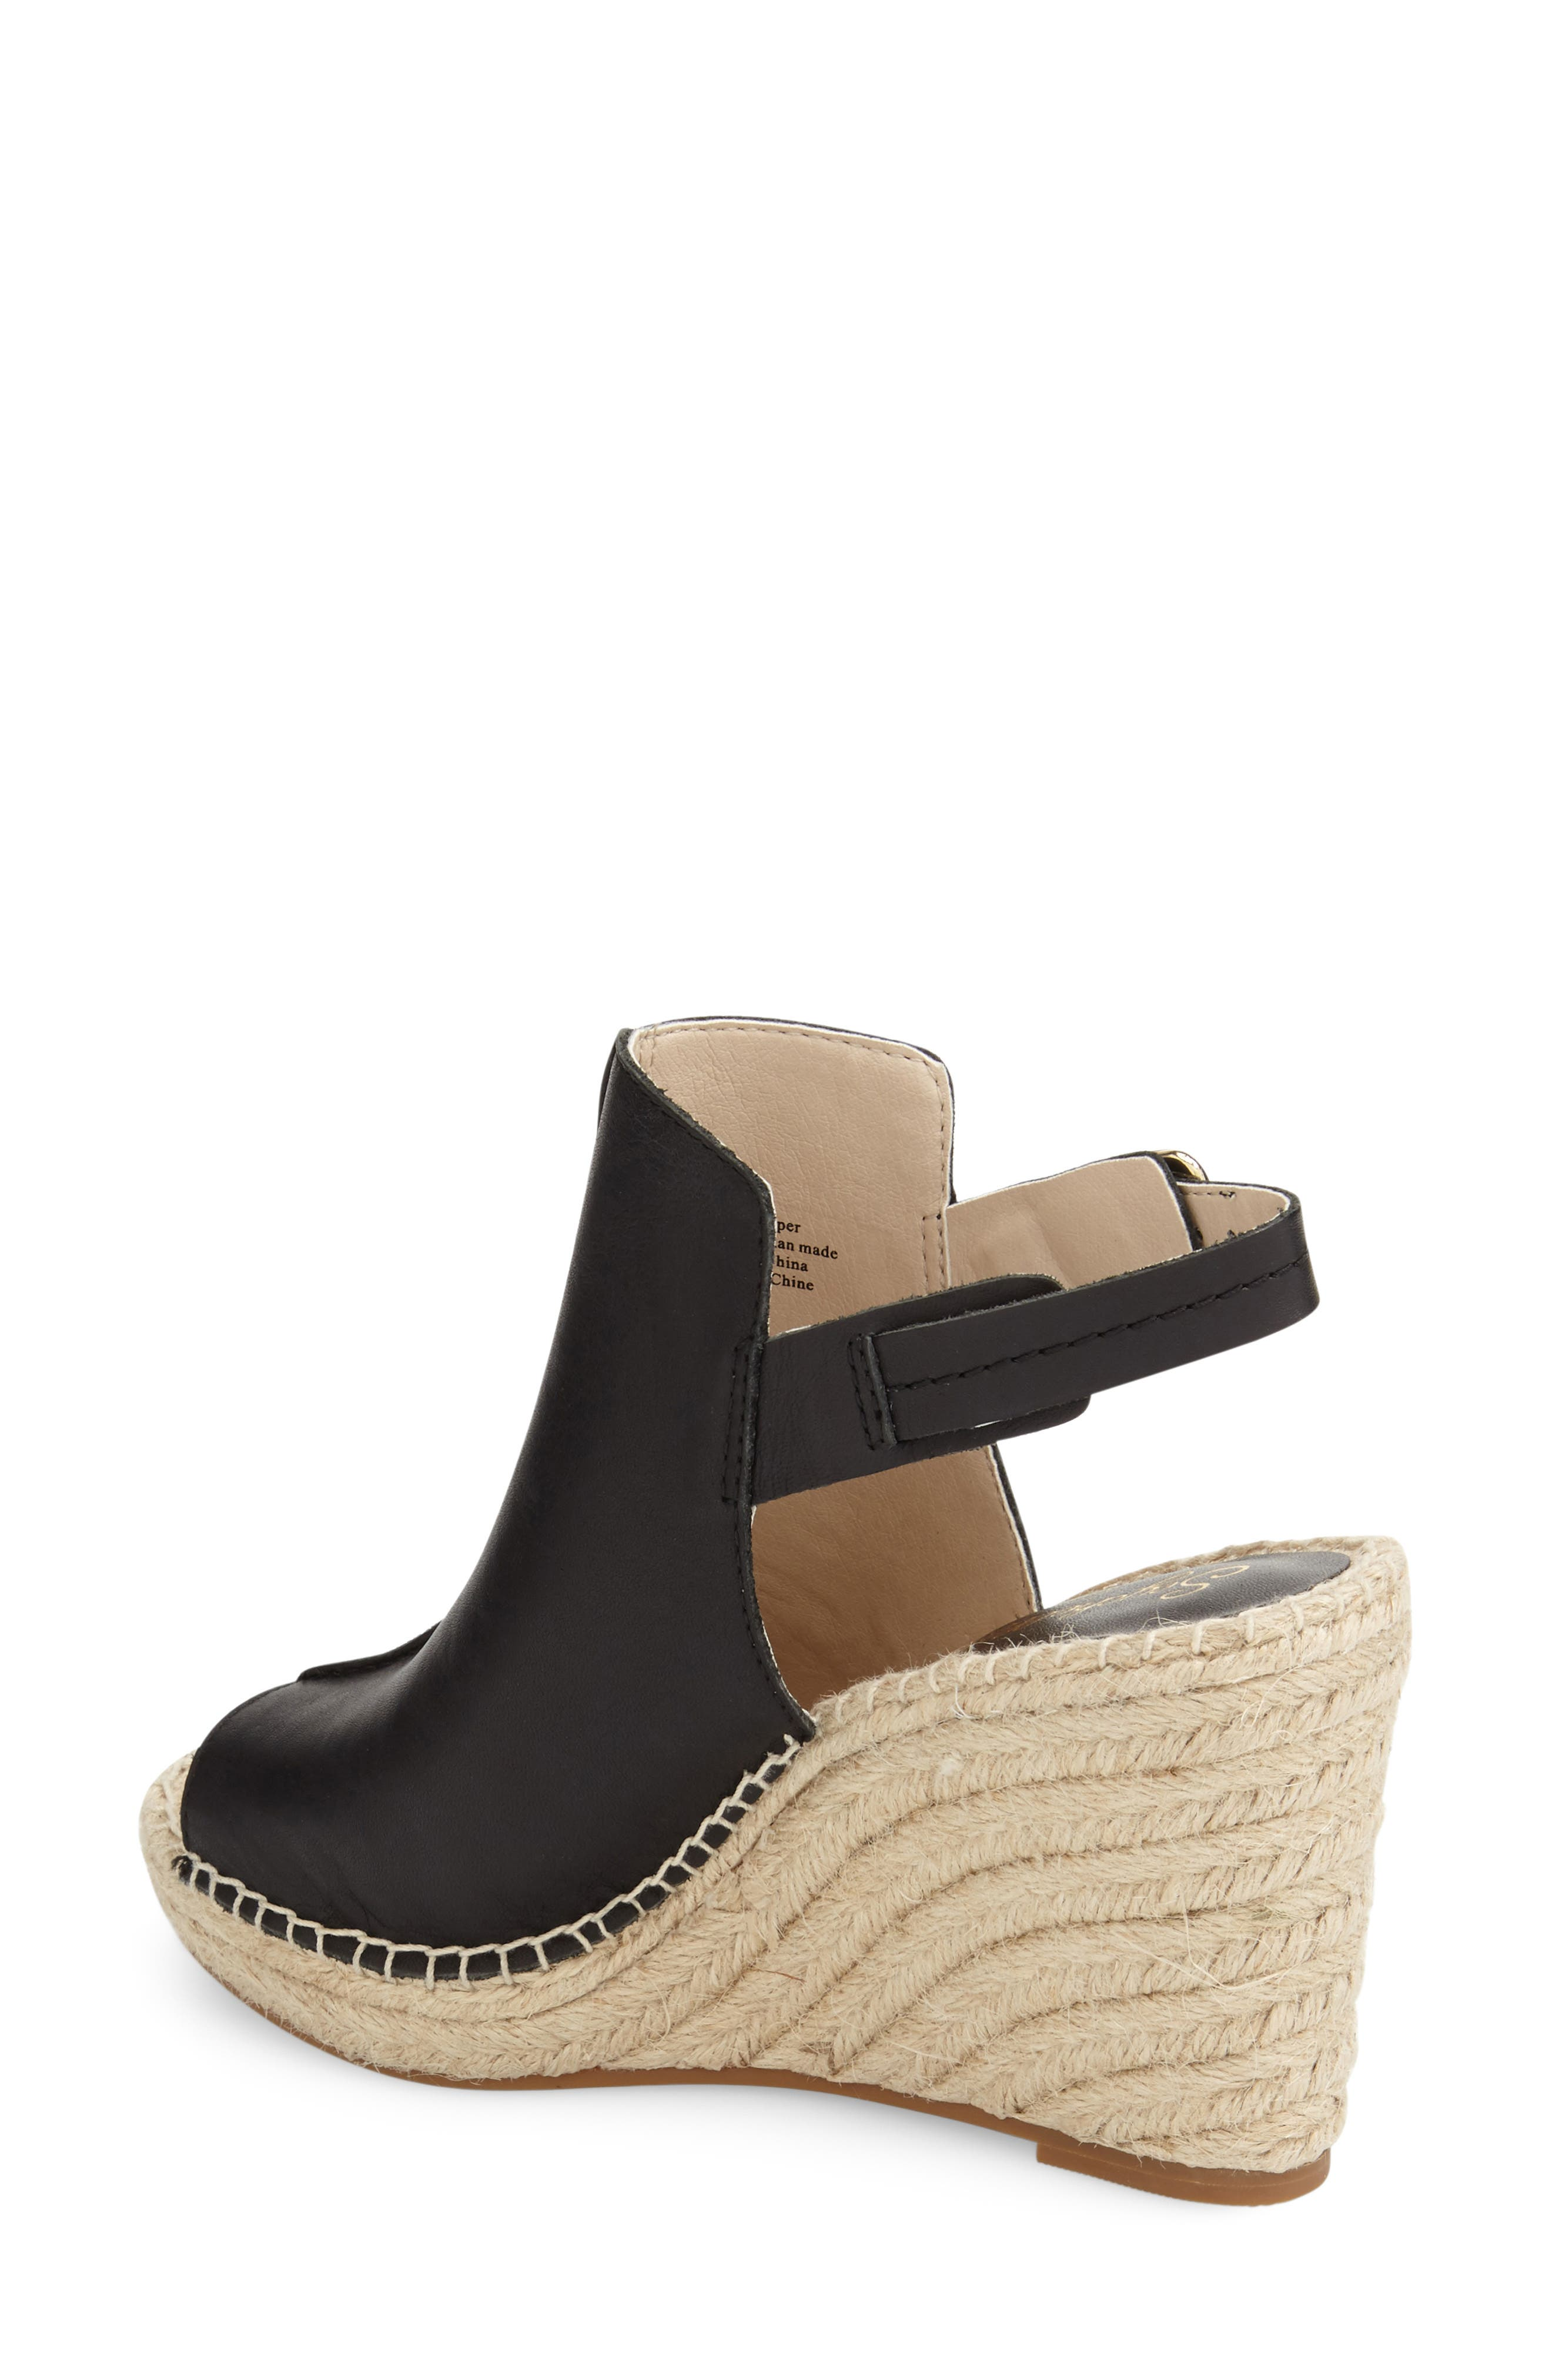 'Charismatic' Espadrille Wedge,                             Alternate thumbnail 5, color,                             001